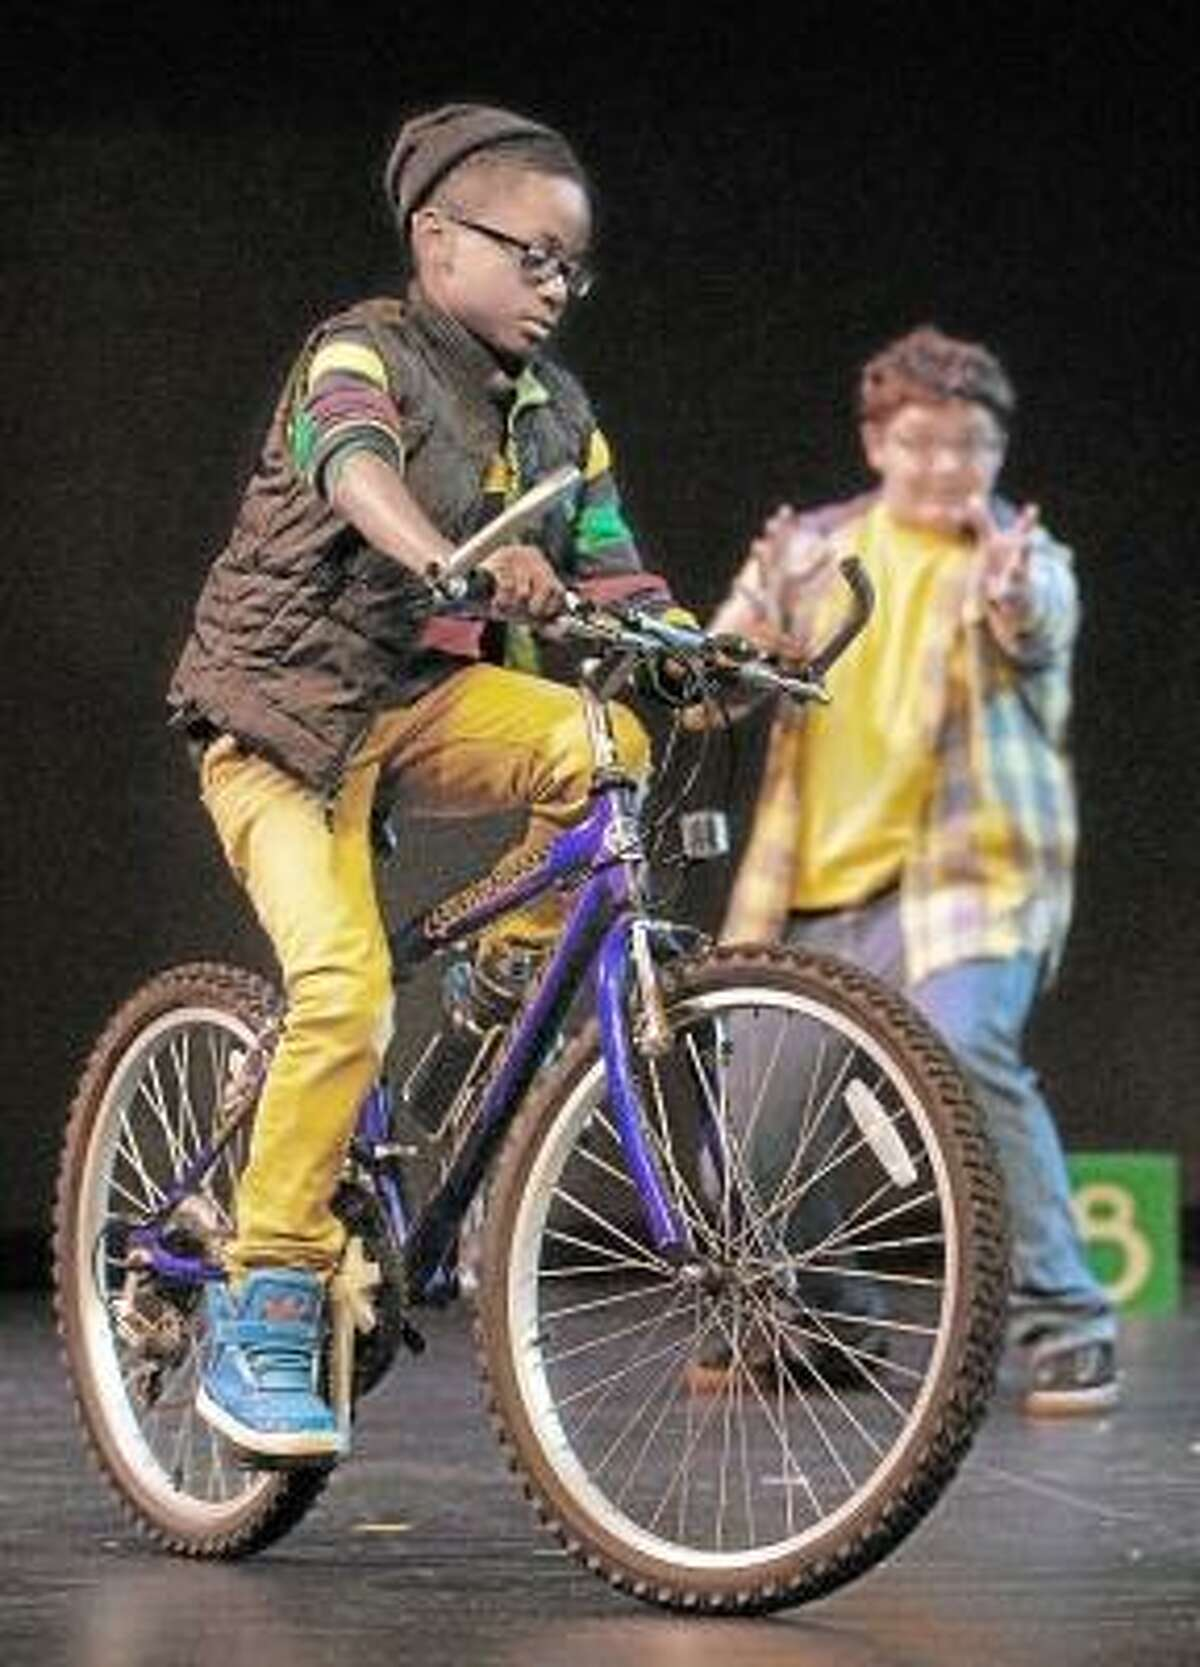 """Catherine Avalone/The Middletown Press Owen, played by Mark Sumner, 15, right, teaches young Q Phipps played by D'Andrew Saunders, 10, to ride a bike during rehearsal Monday night of """"Bigger Than You Think,"""" a collaborative effort by the Middletown Youth Services Bureau, The Center for the Advancement of Youth, Family and Community Services and Community Performance International. Written by award-winning playwright Jules Corriere and directed by Richard Geer, the one-act play is based on several childhood stories of residents and will be performed by a cast of 40 tonight at 7, followed by an open community conversation at 8 at the Middletown High School Performing Arts Center."""